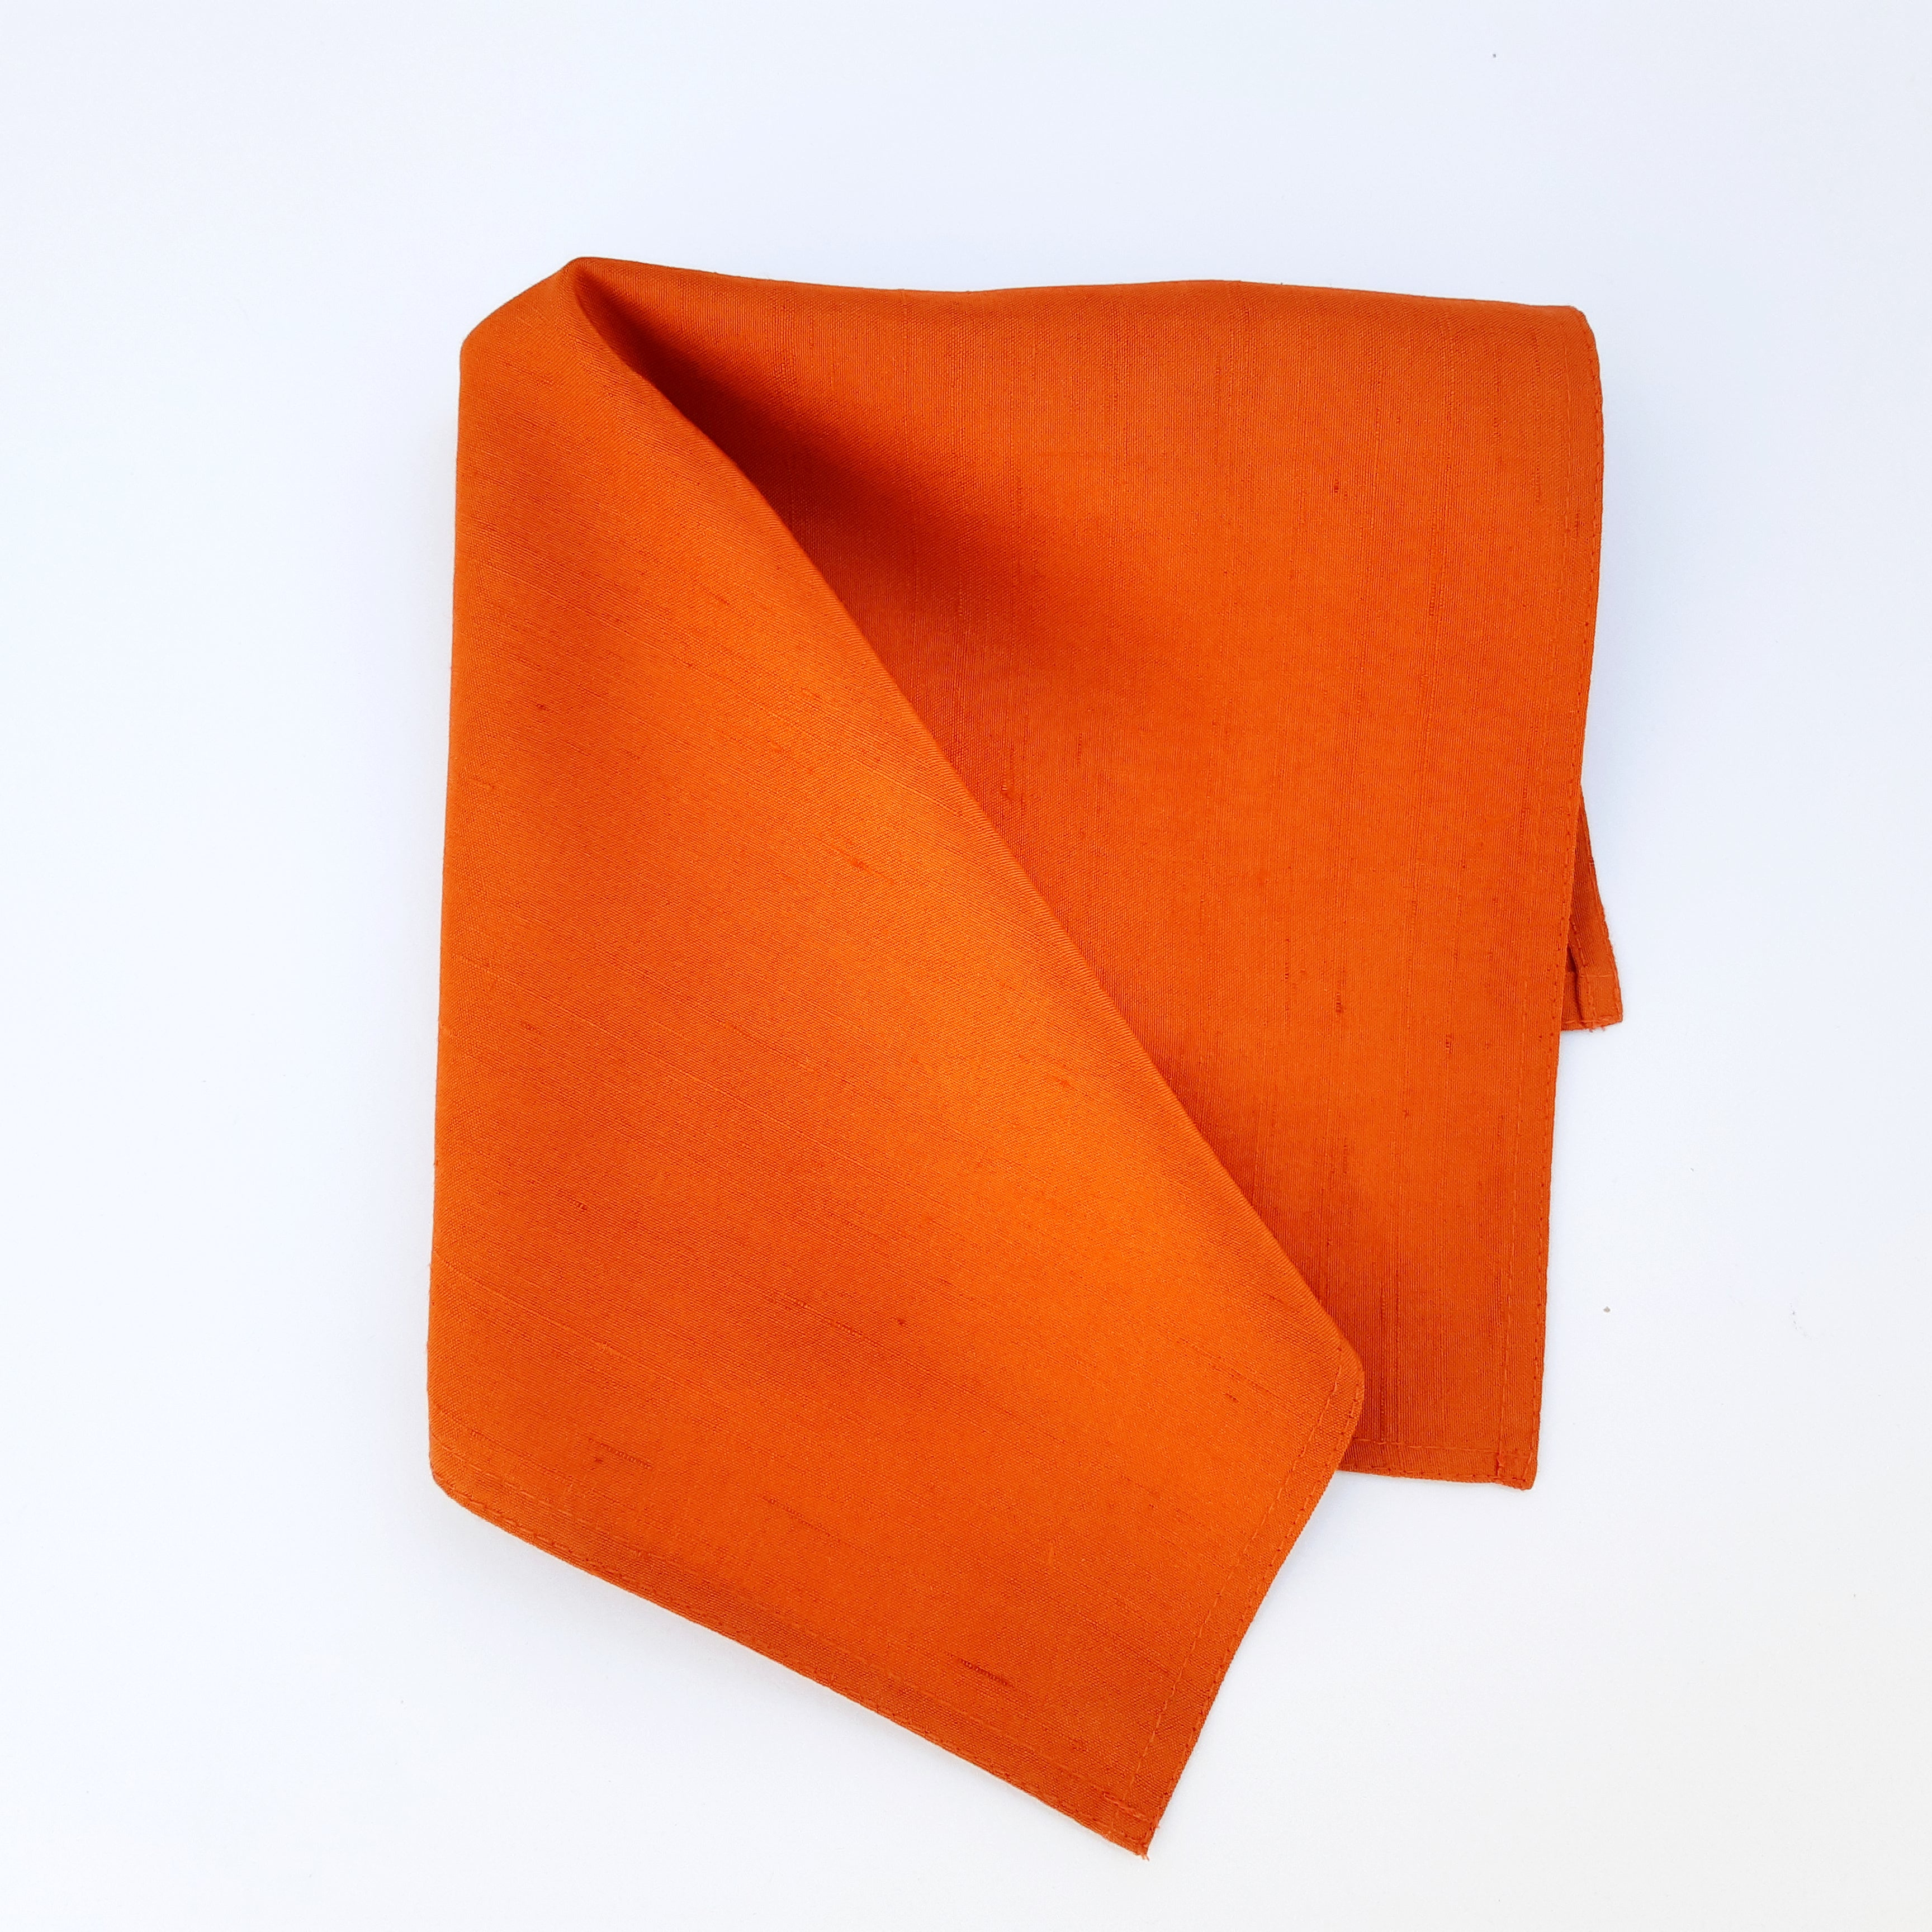 pocket square orange painted silk for fathers day gift for men